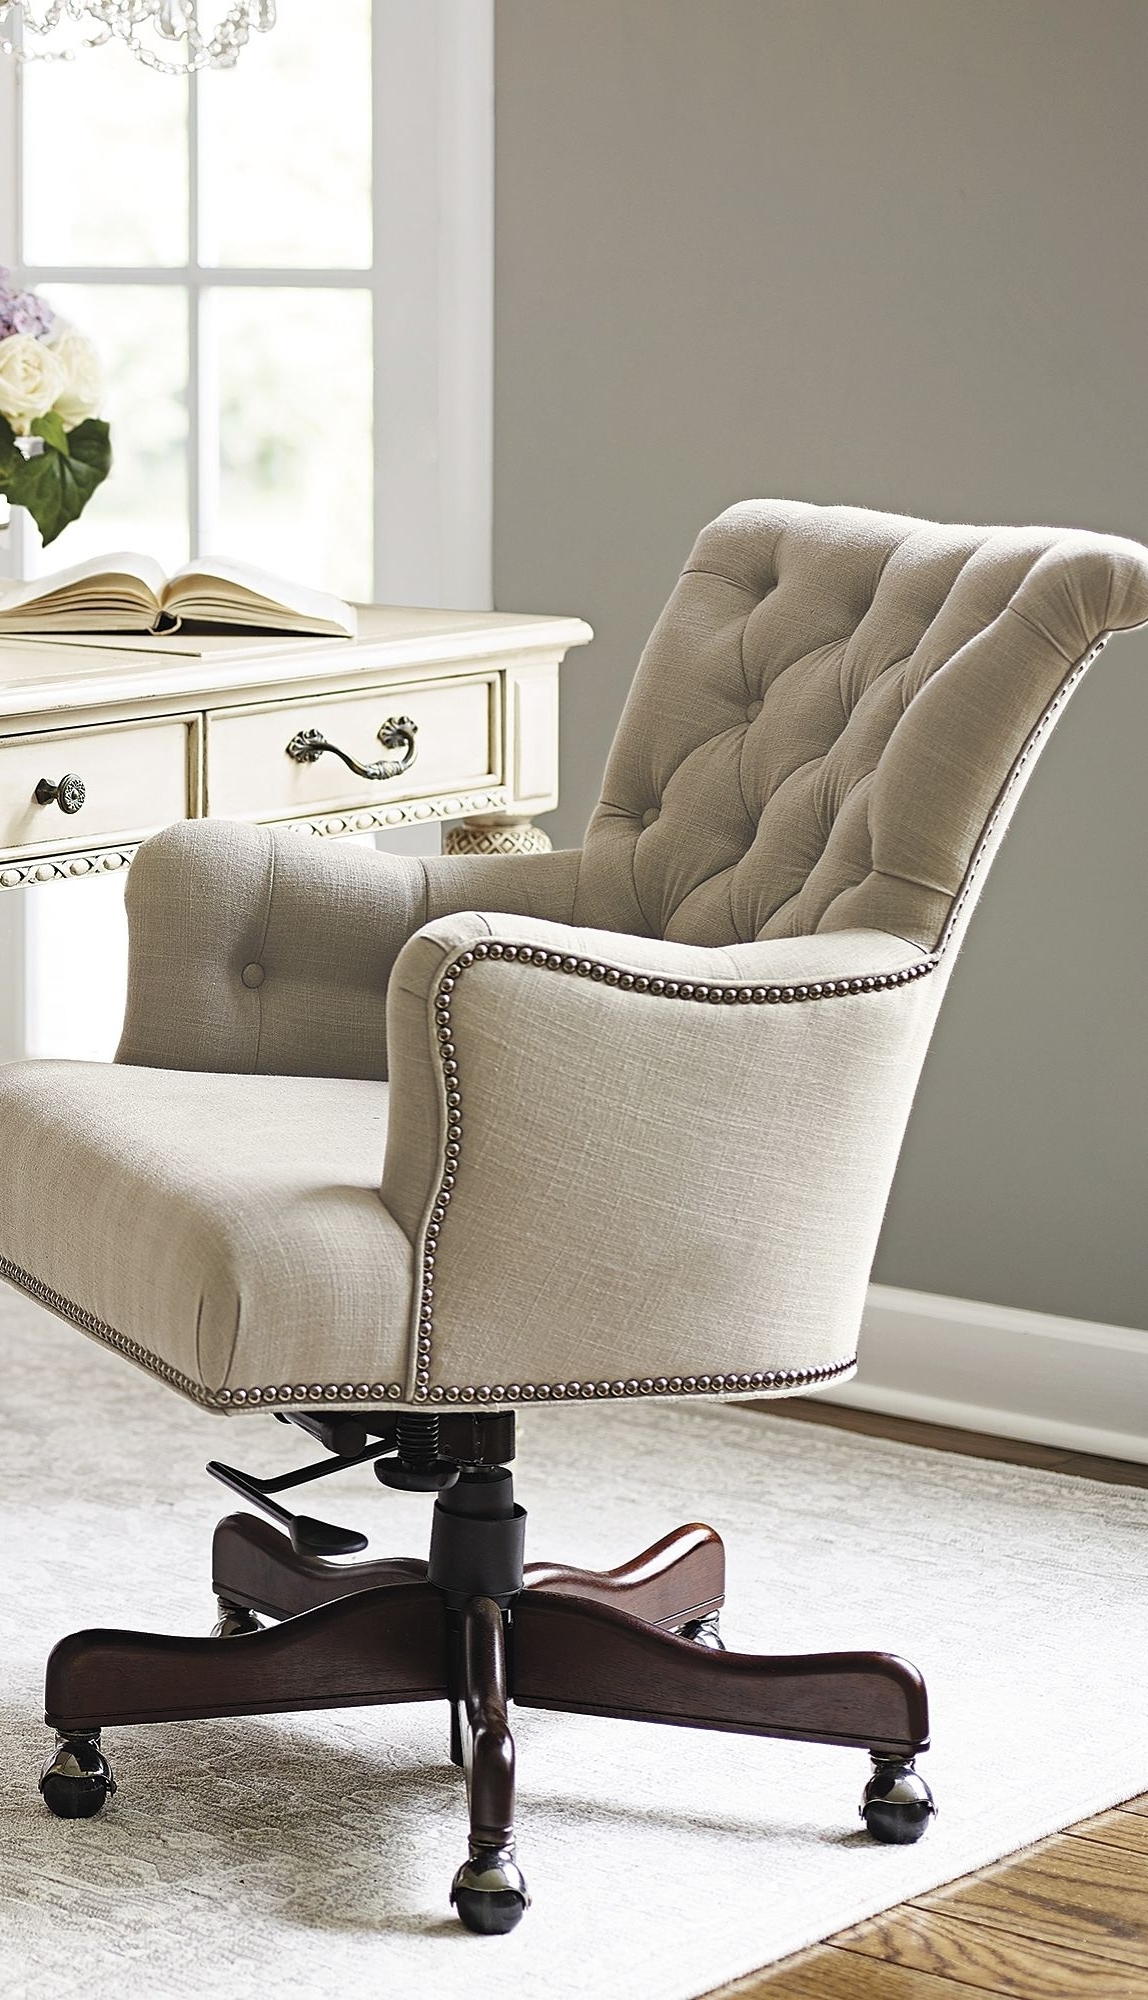 Popular Button Tufted Linen Accented With Silver Nailhead Trim Defines The With Nailhead Executive Office Chairs (View 18 of 20)